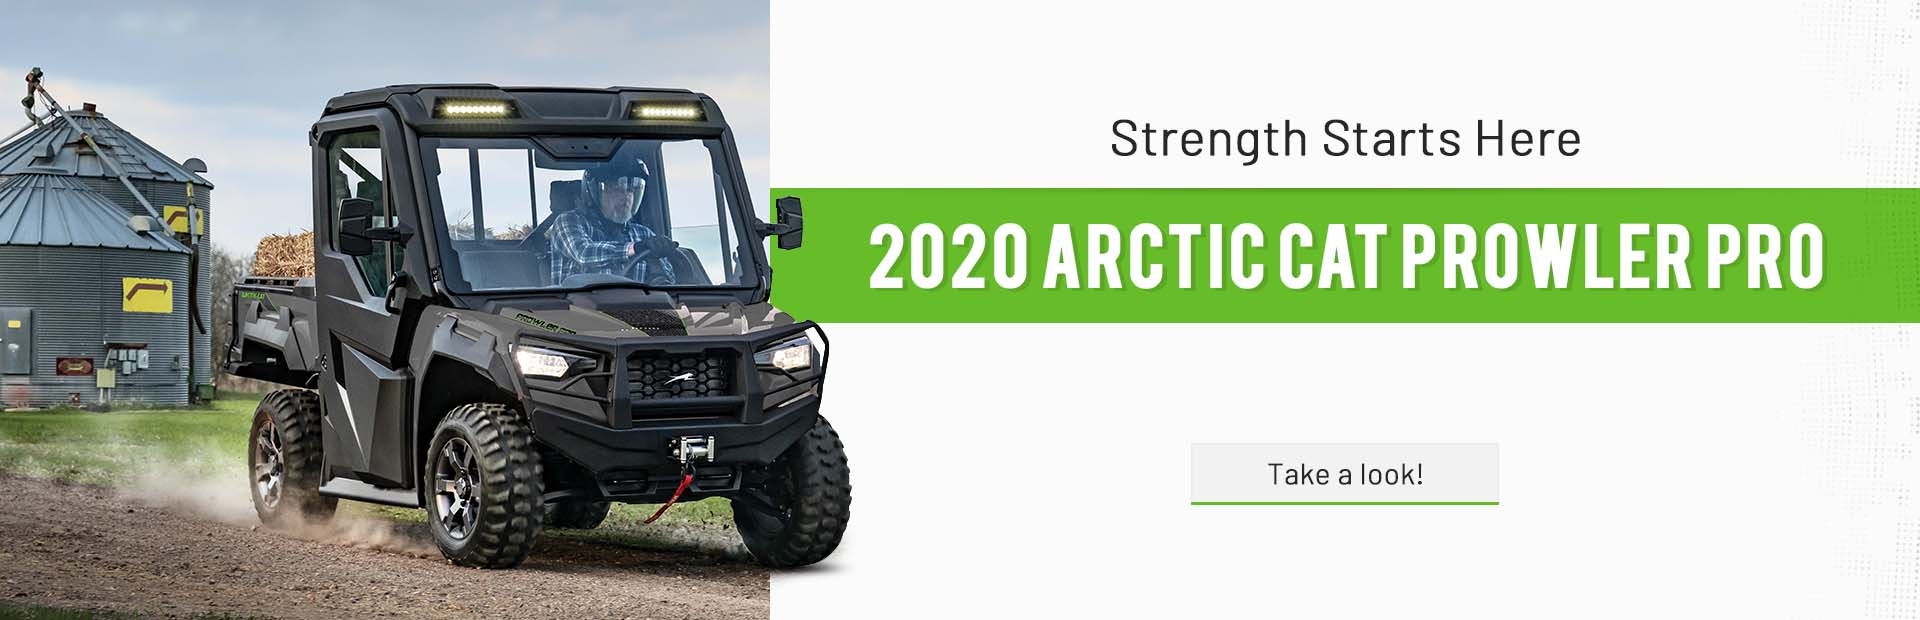 2020 Arctic Cat Prowler Pro: Click here to see the models.